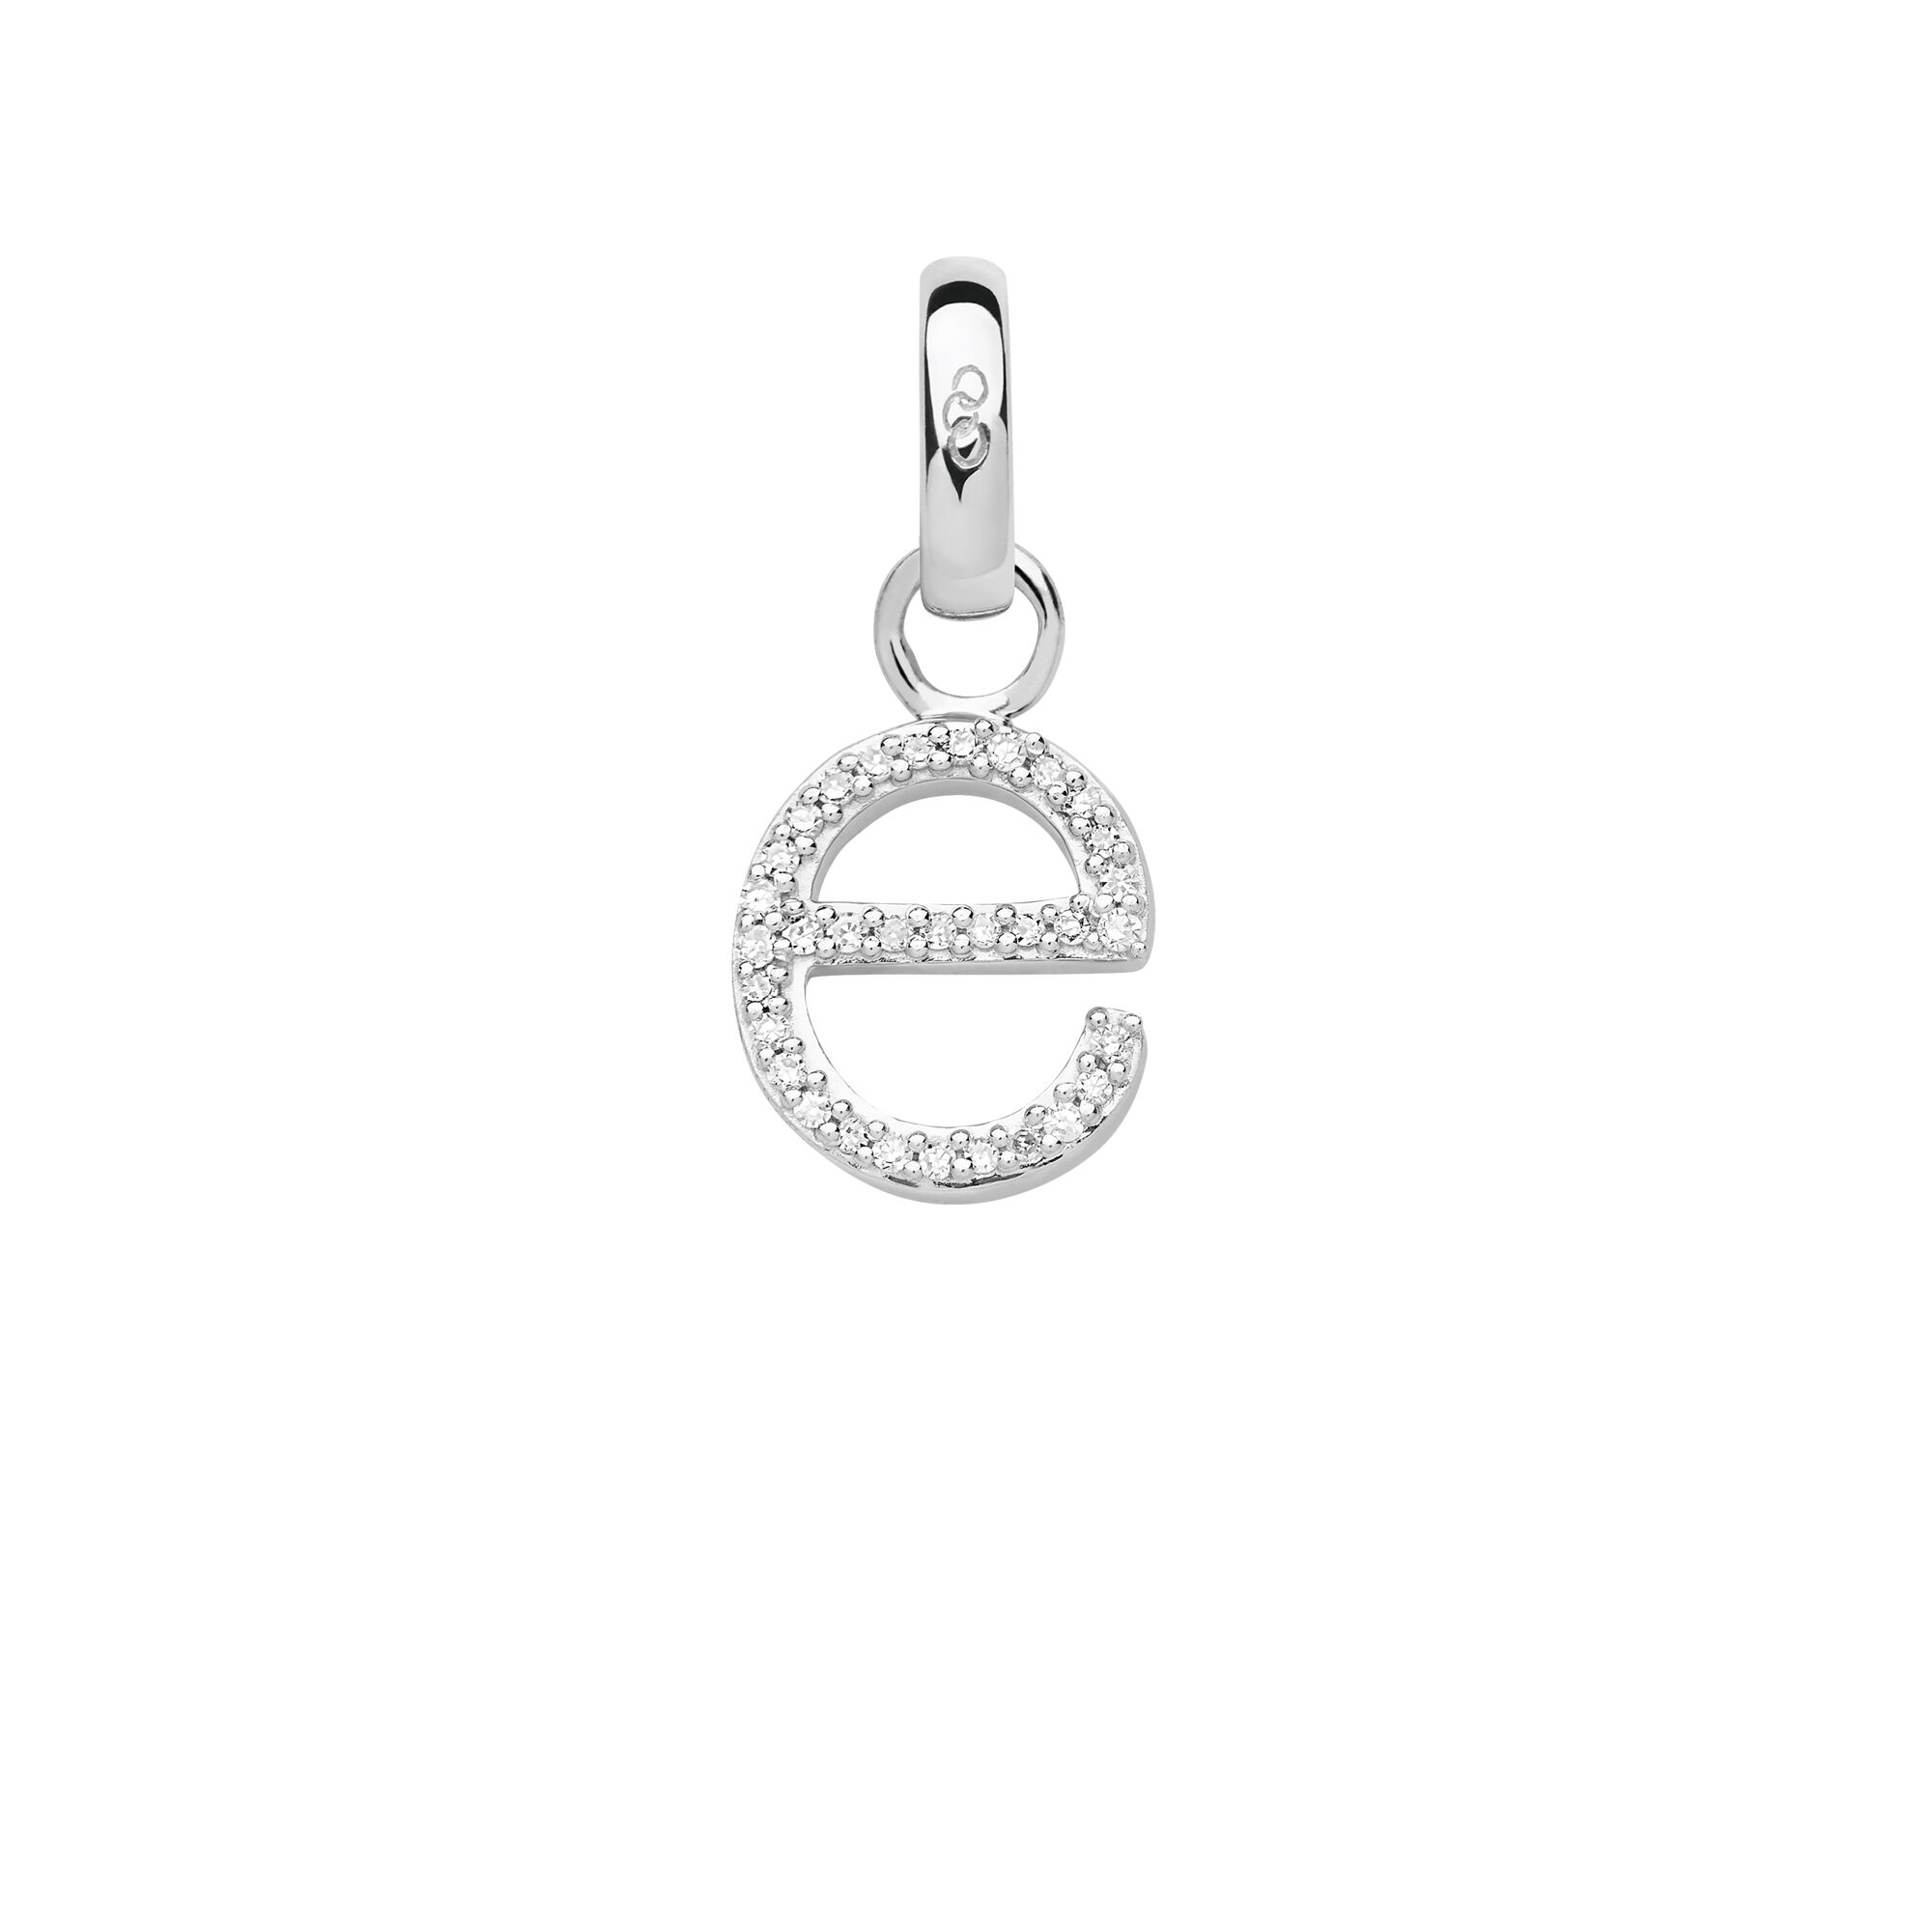 LINKS OF LONDON Sterling Silver Tres Chic Handbag Sweetie Charm cwaGWjd